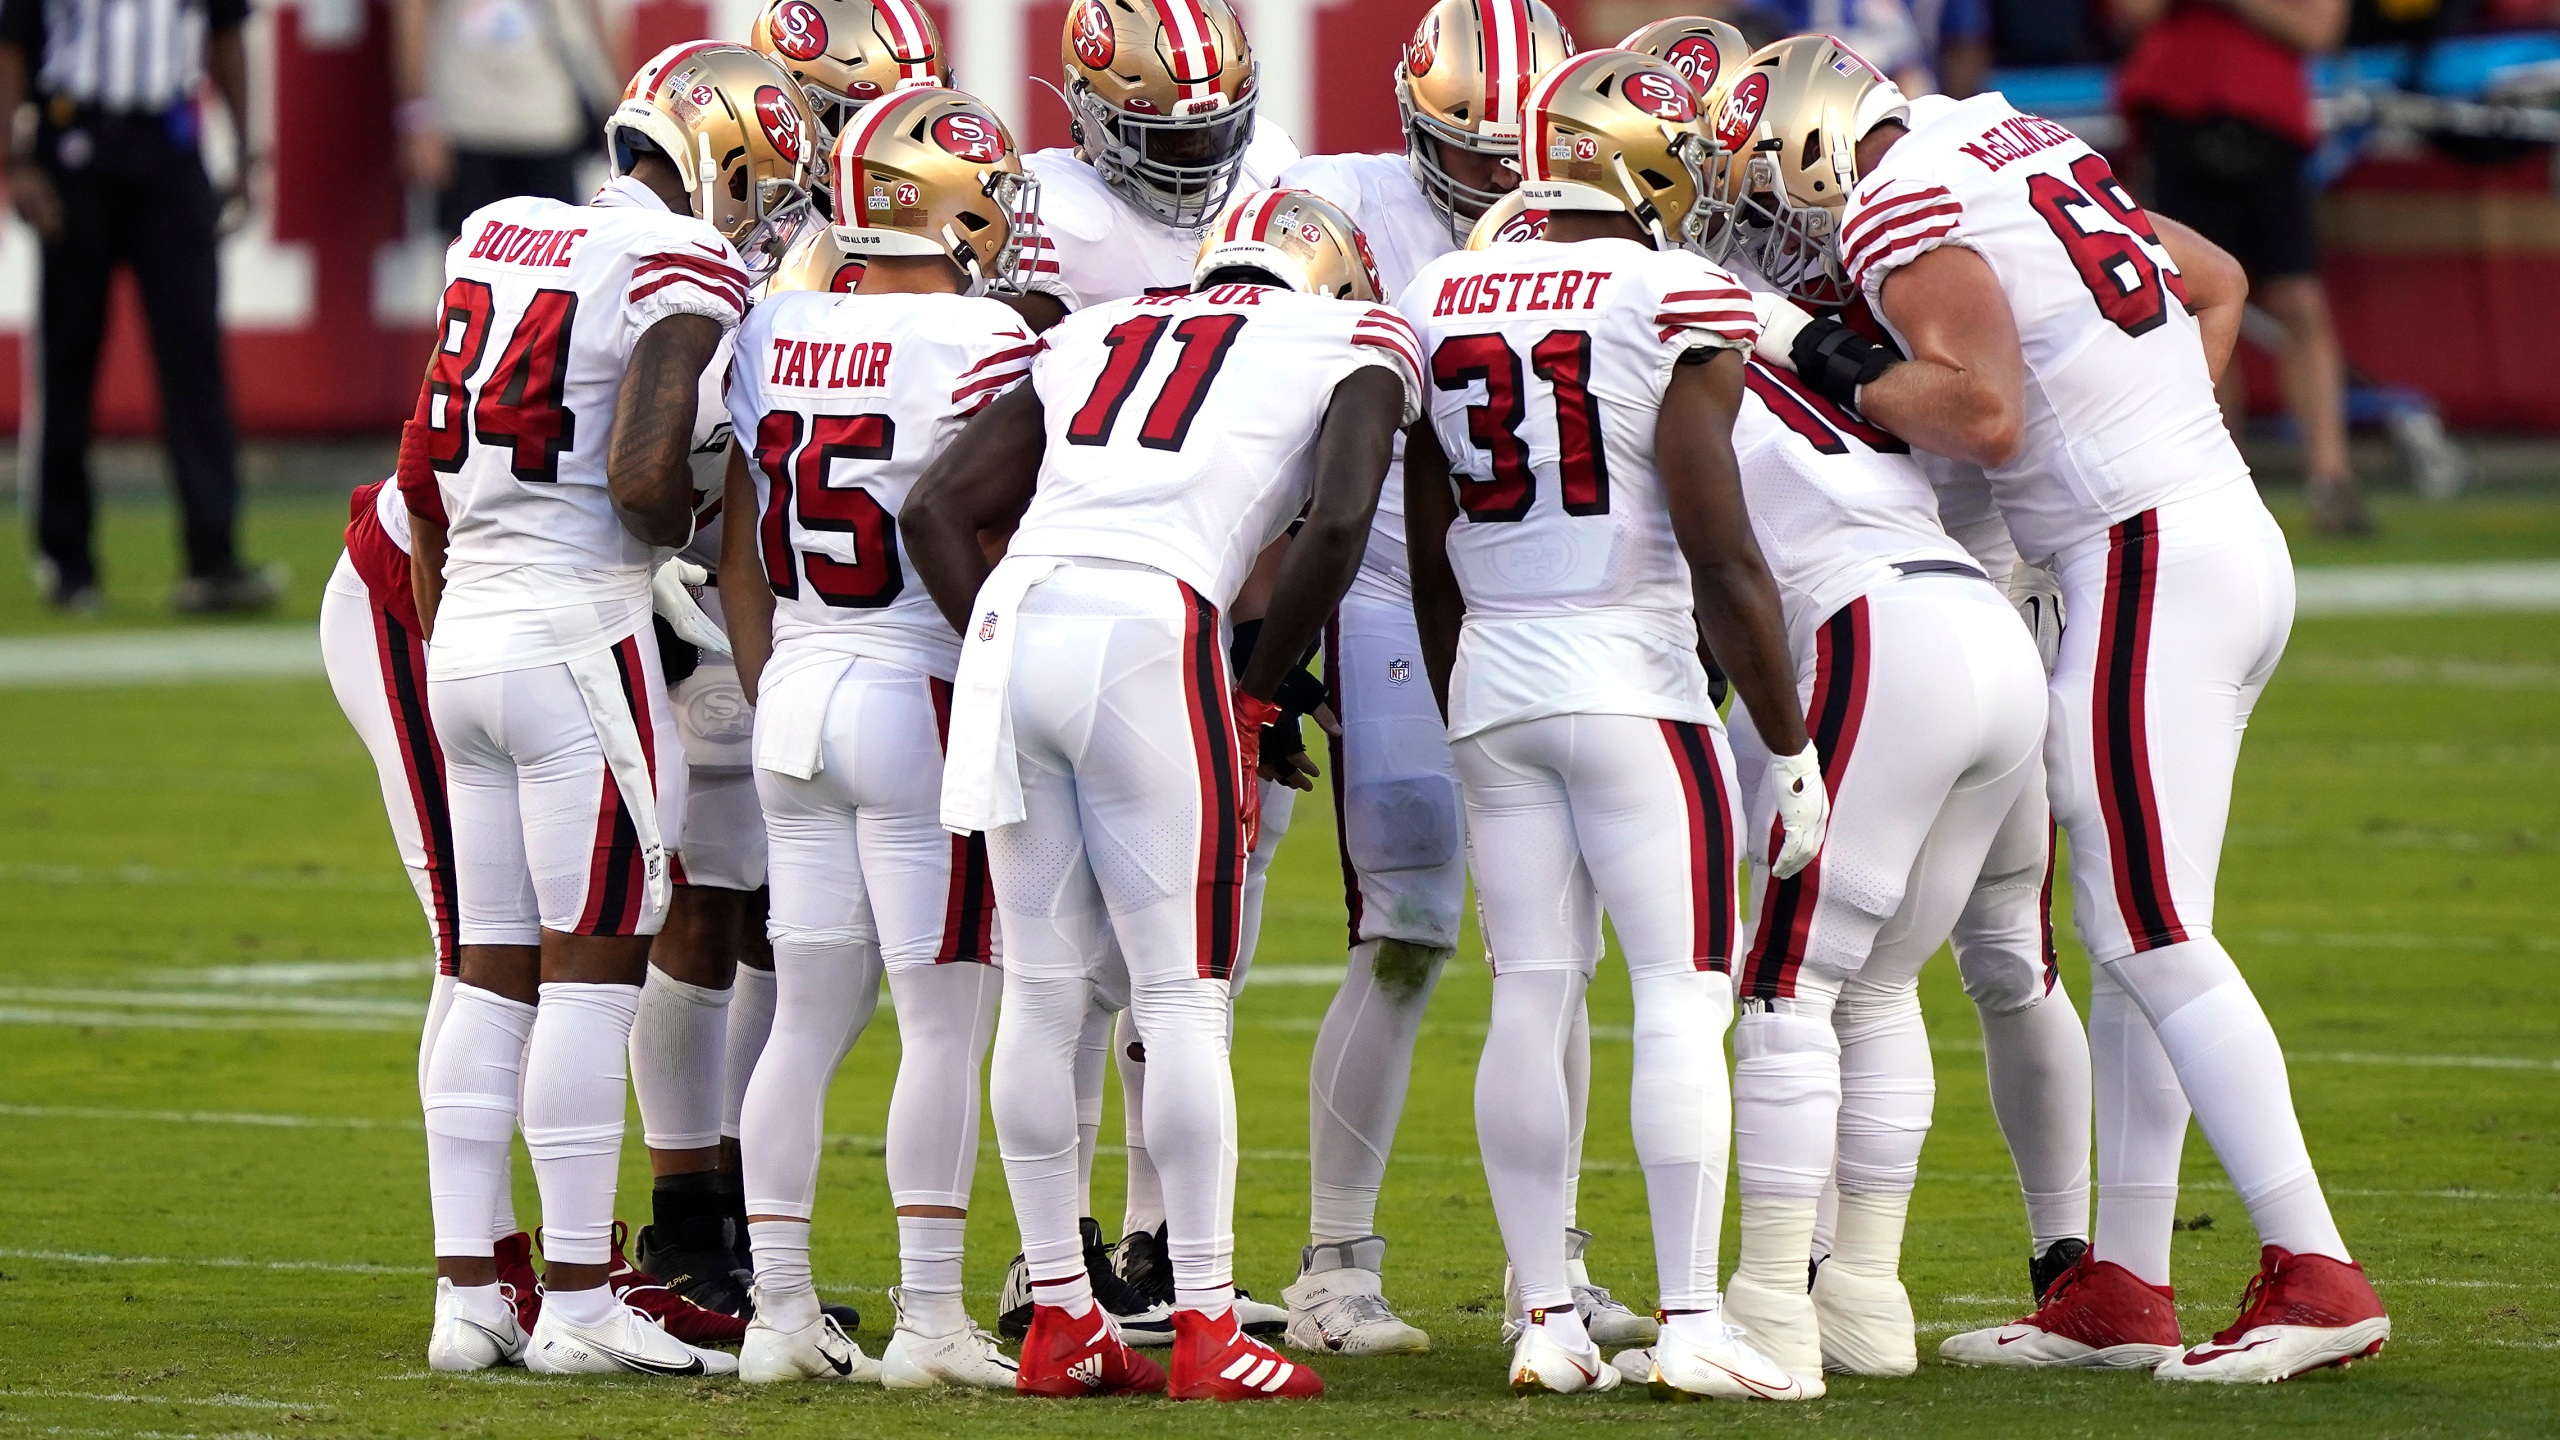 The San Francisco 49ers huddle against the Los Angeles Rams during the first quarter at Levi's Stadium on October 18, 2020 in Santa Clara. (Thearon W. Henderson/Getty Images)